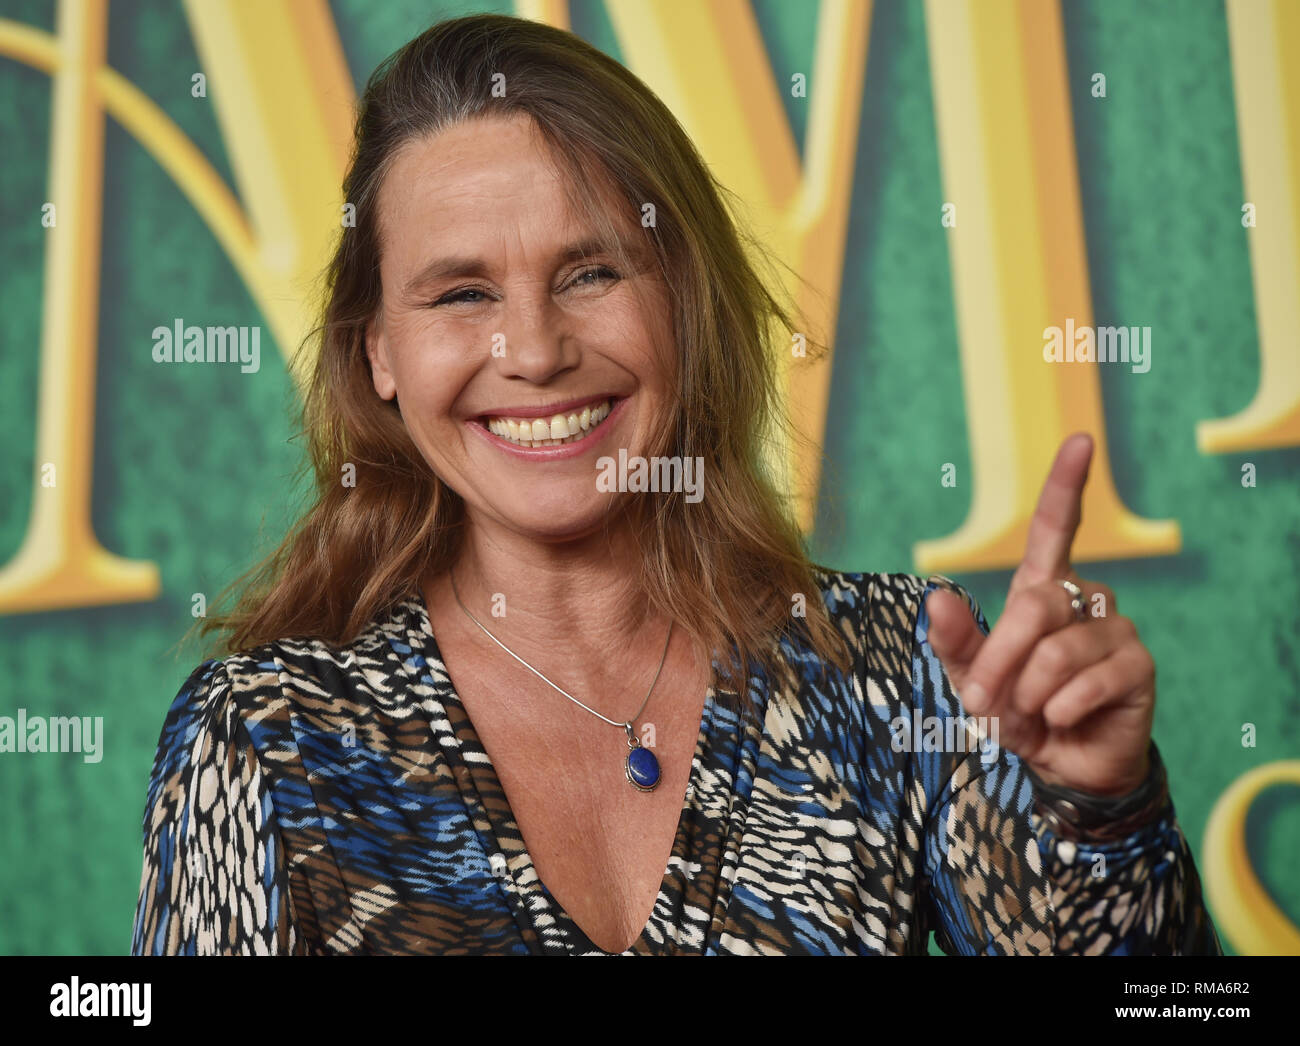 14 February 2019, Bavaria, München: The actor and author Marie Theres Kroetz-Relin comes to the premiere of the musical 'Die fabelhafte Welt der Amelie' in Werk 7 Theater. Photo: Angelika Warmuth/dpa - Stock Image